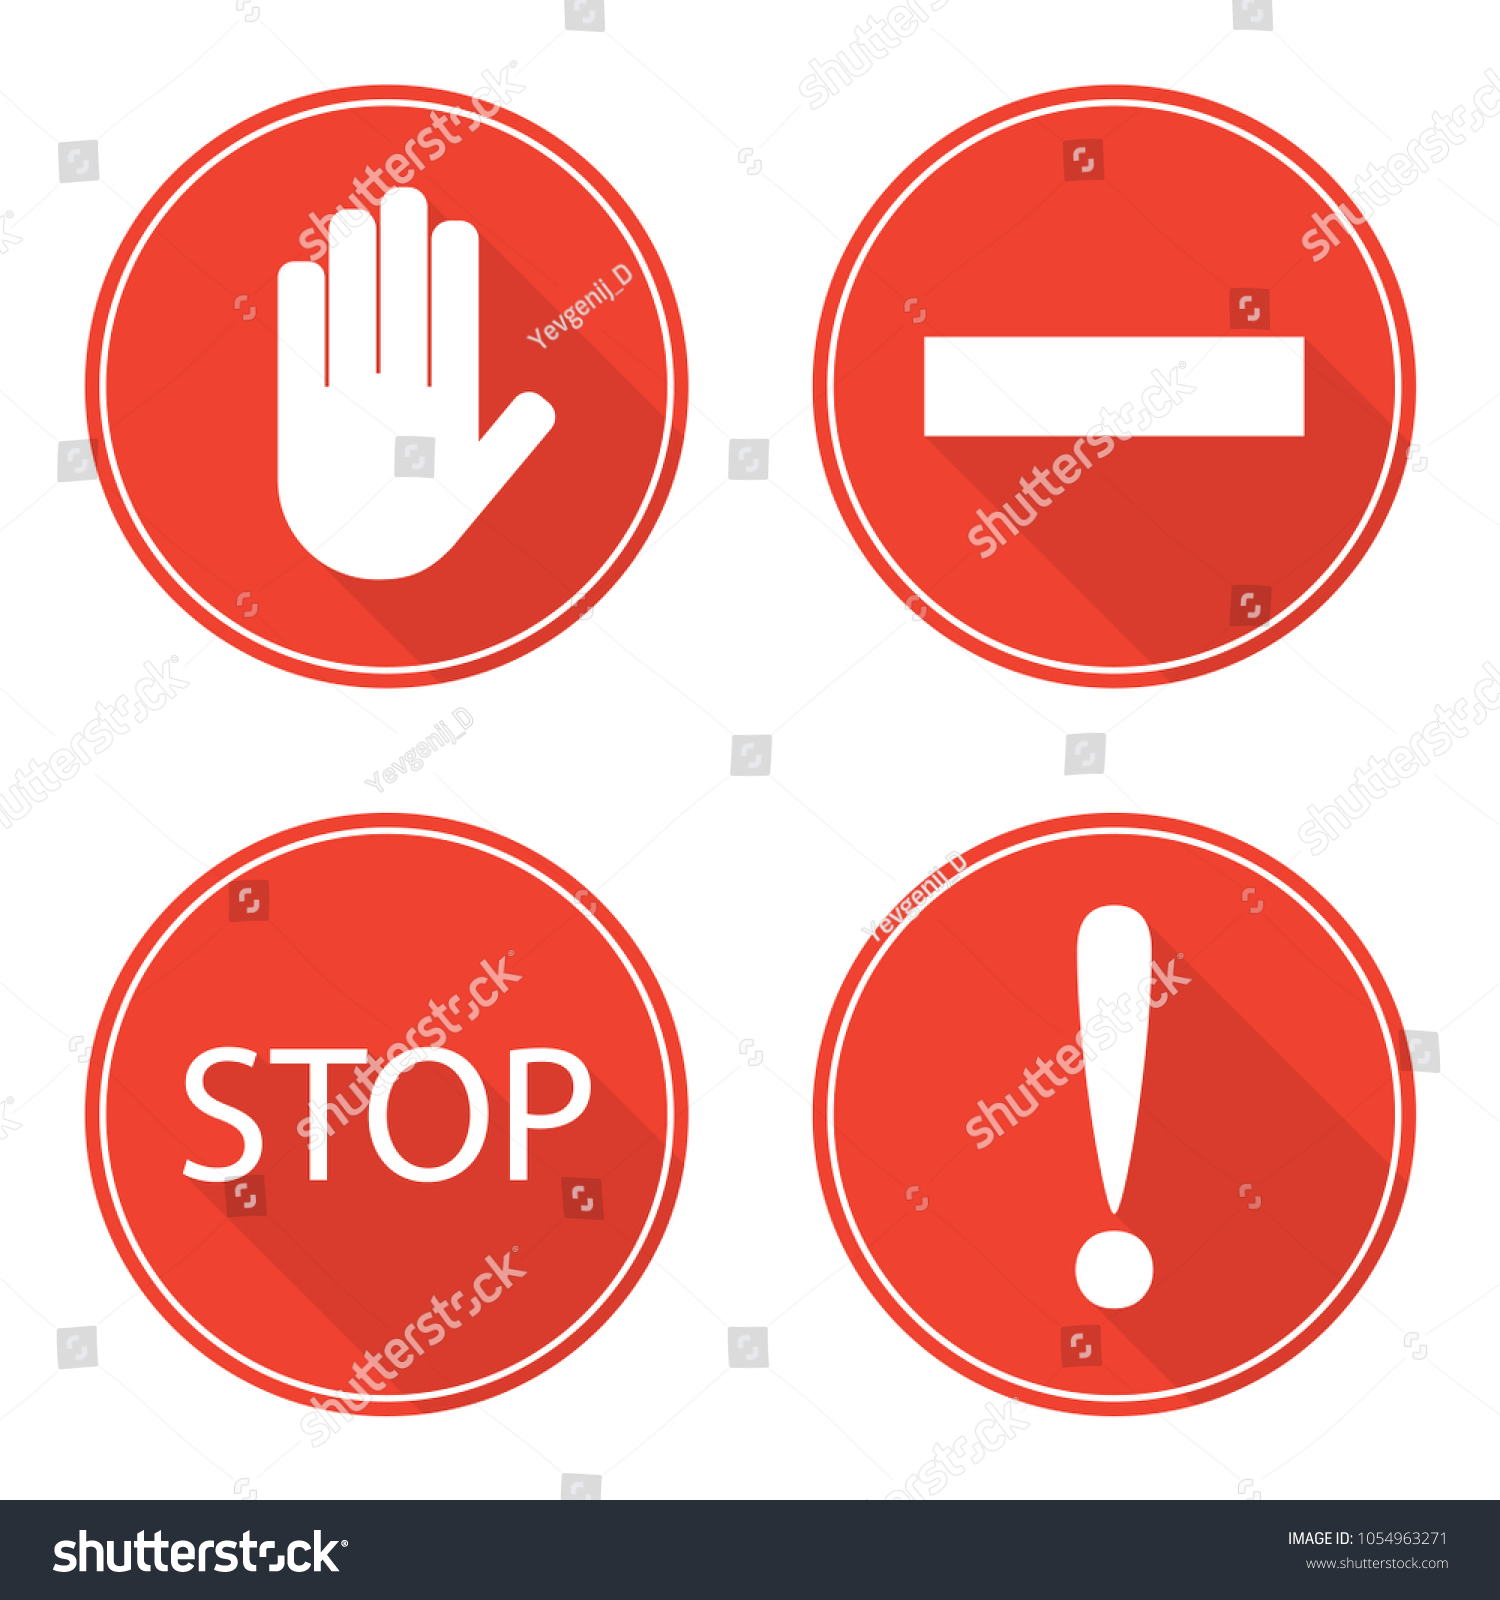 Red stop signs hand rectangle word stock vector 1054963271 red stop signs hand rectangle word stop and exclamation mark stop symbols buycottarizona Choice Image